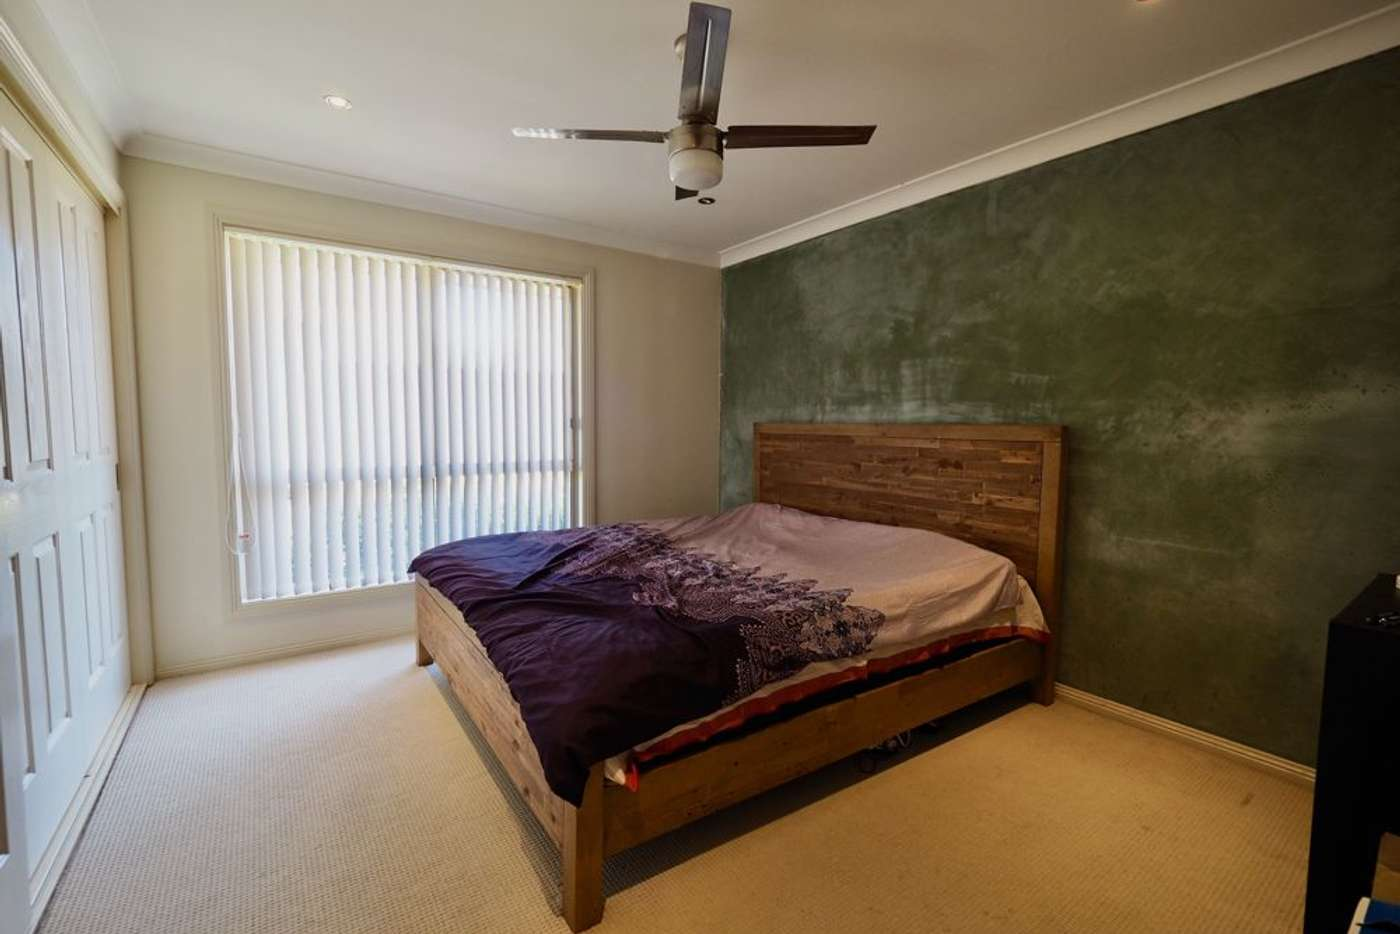 Sixth view of Homely house listing, 1/16 Canberra Street, Oxley Park NSW 2760